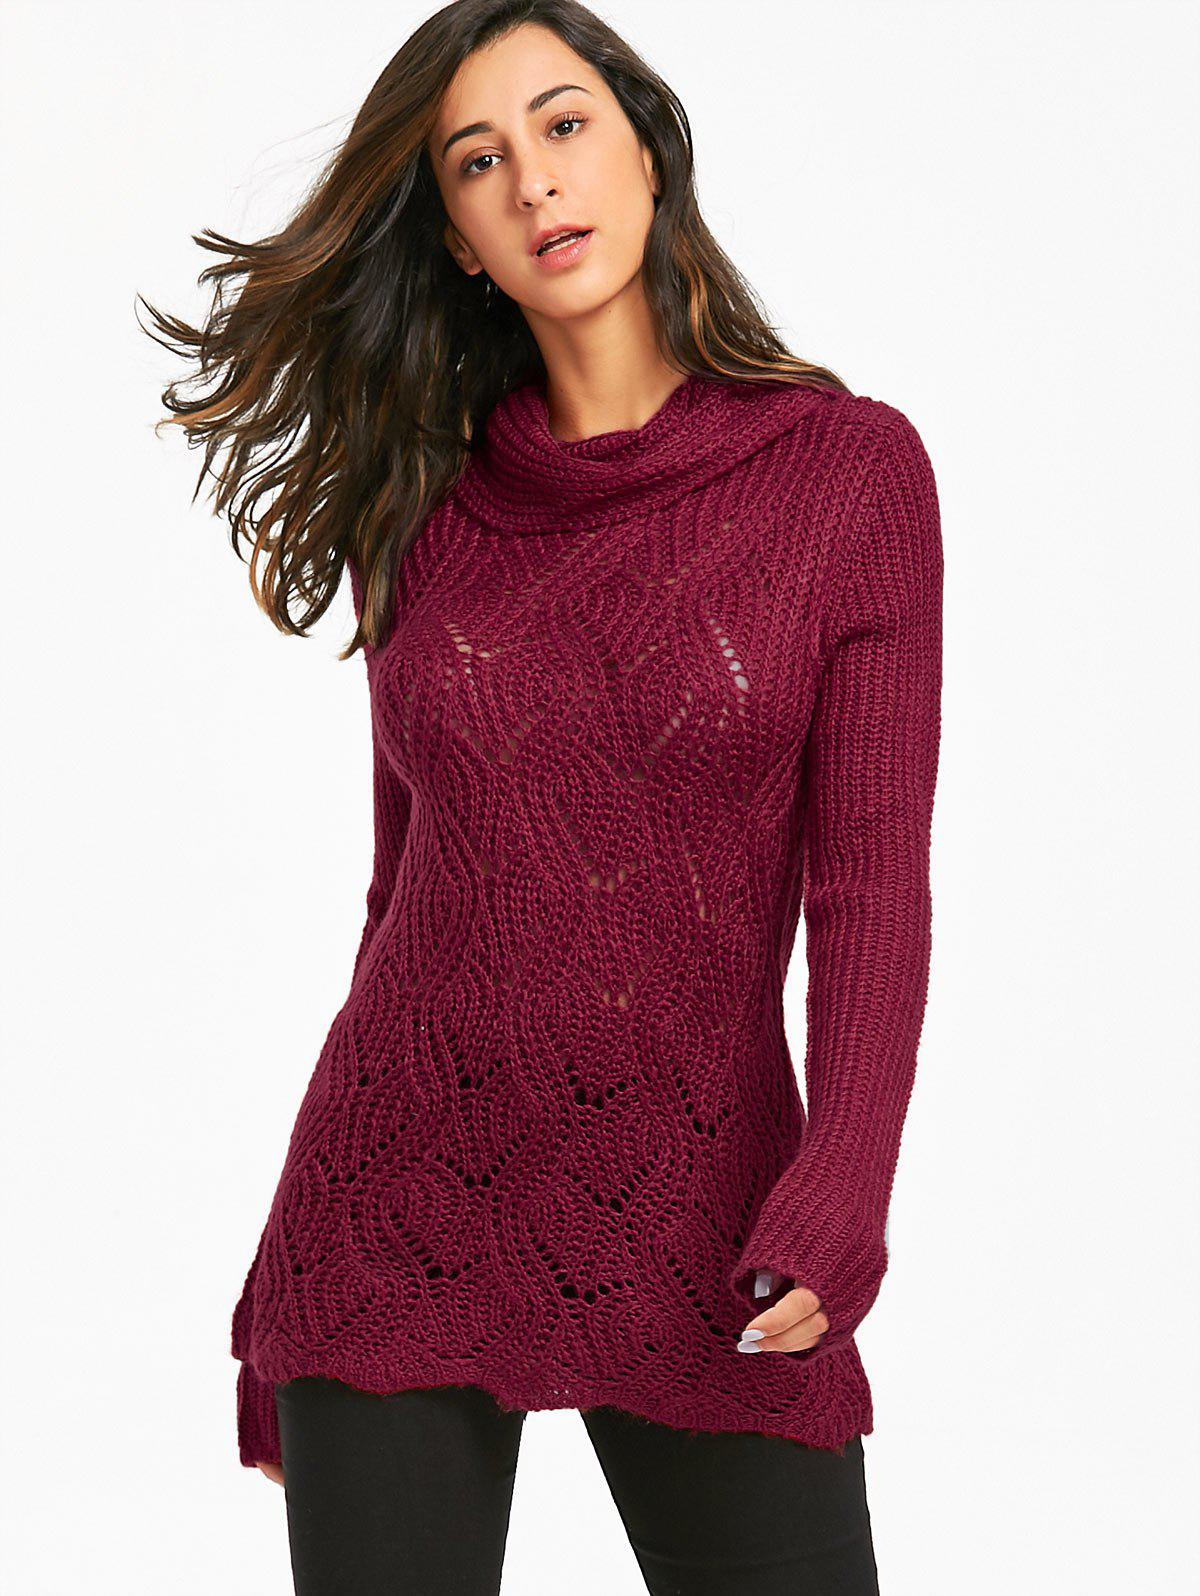 2018 Cable Knit Chunky Turtleneck Sweater DARK RED ONE SIZE In ...